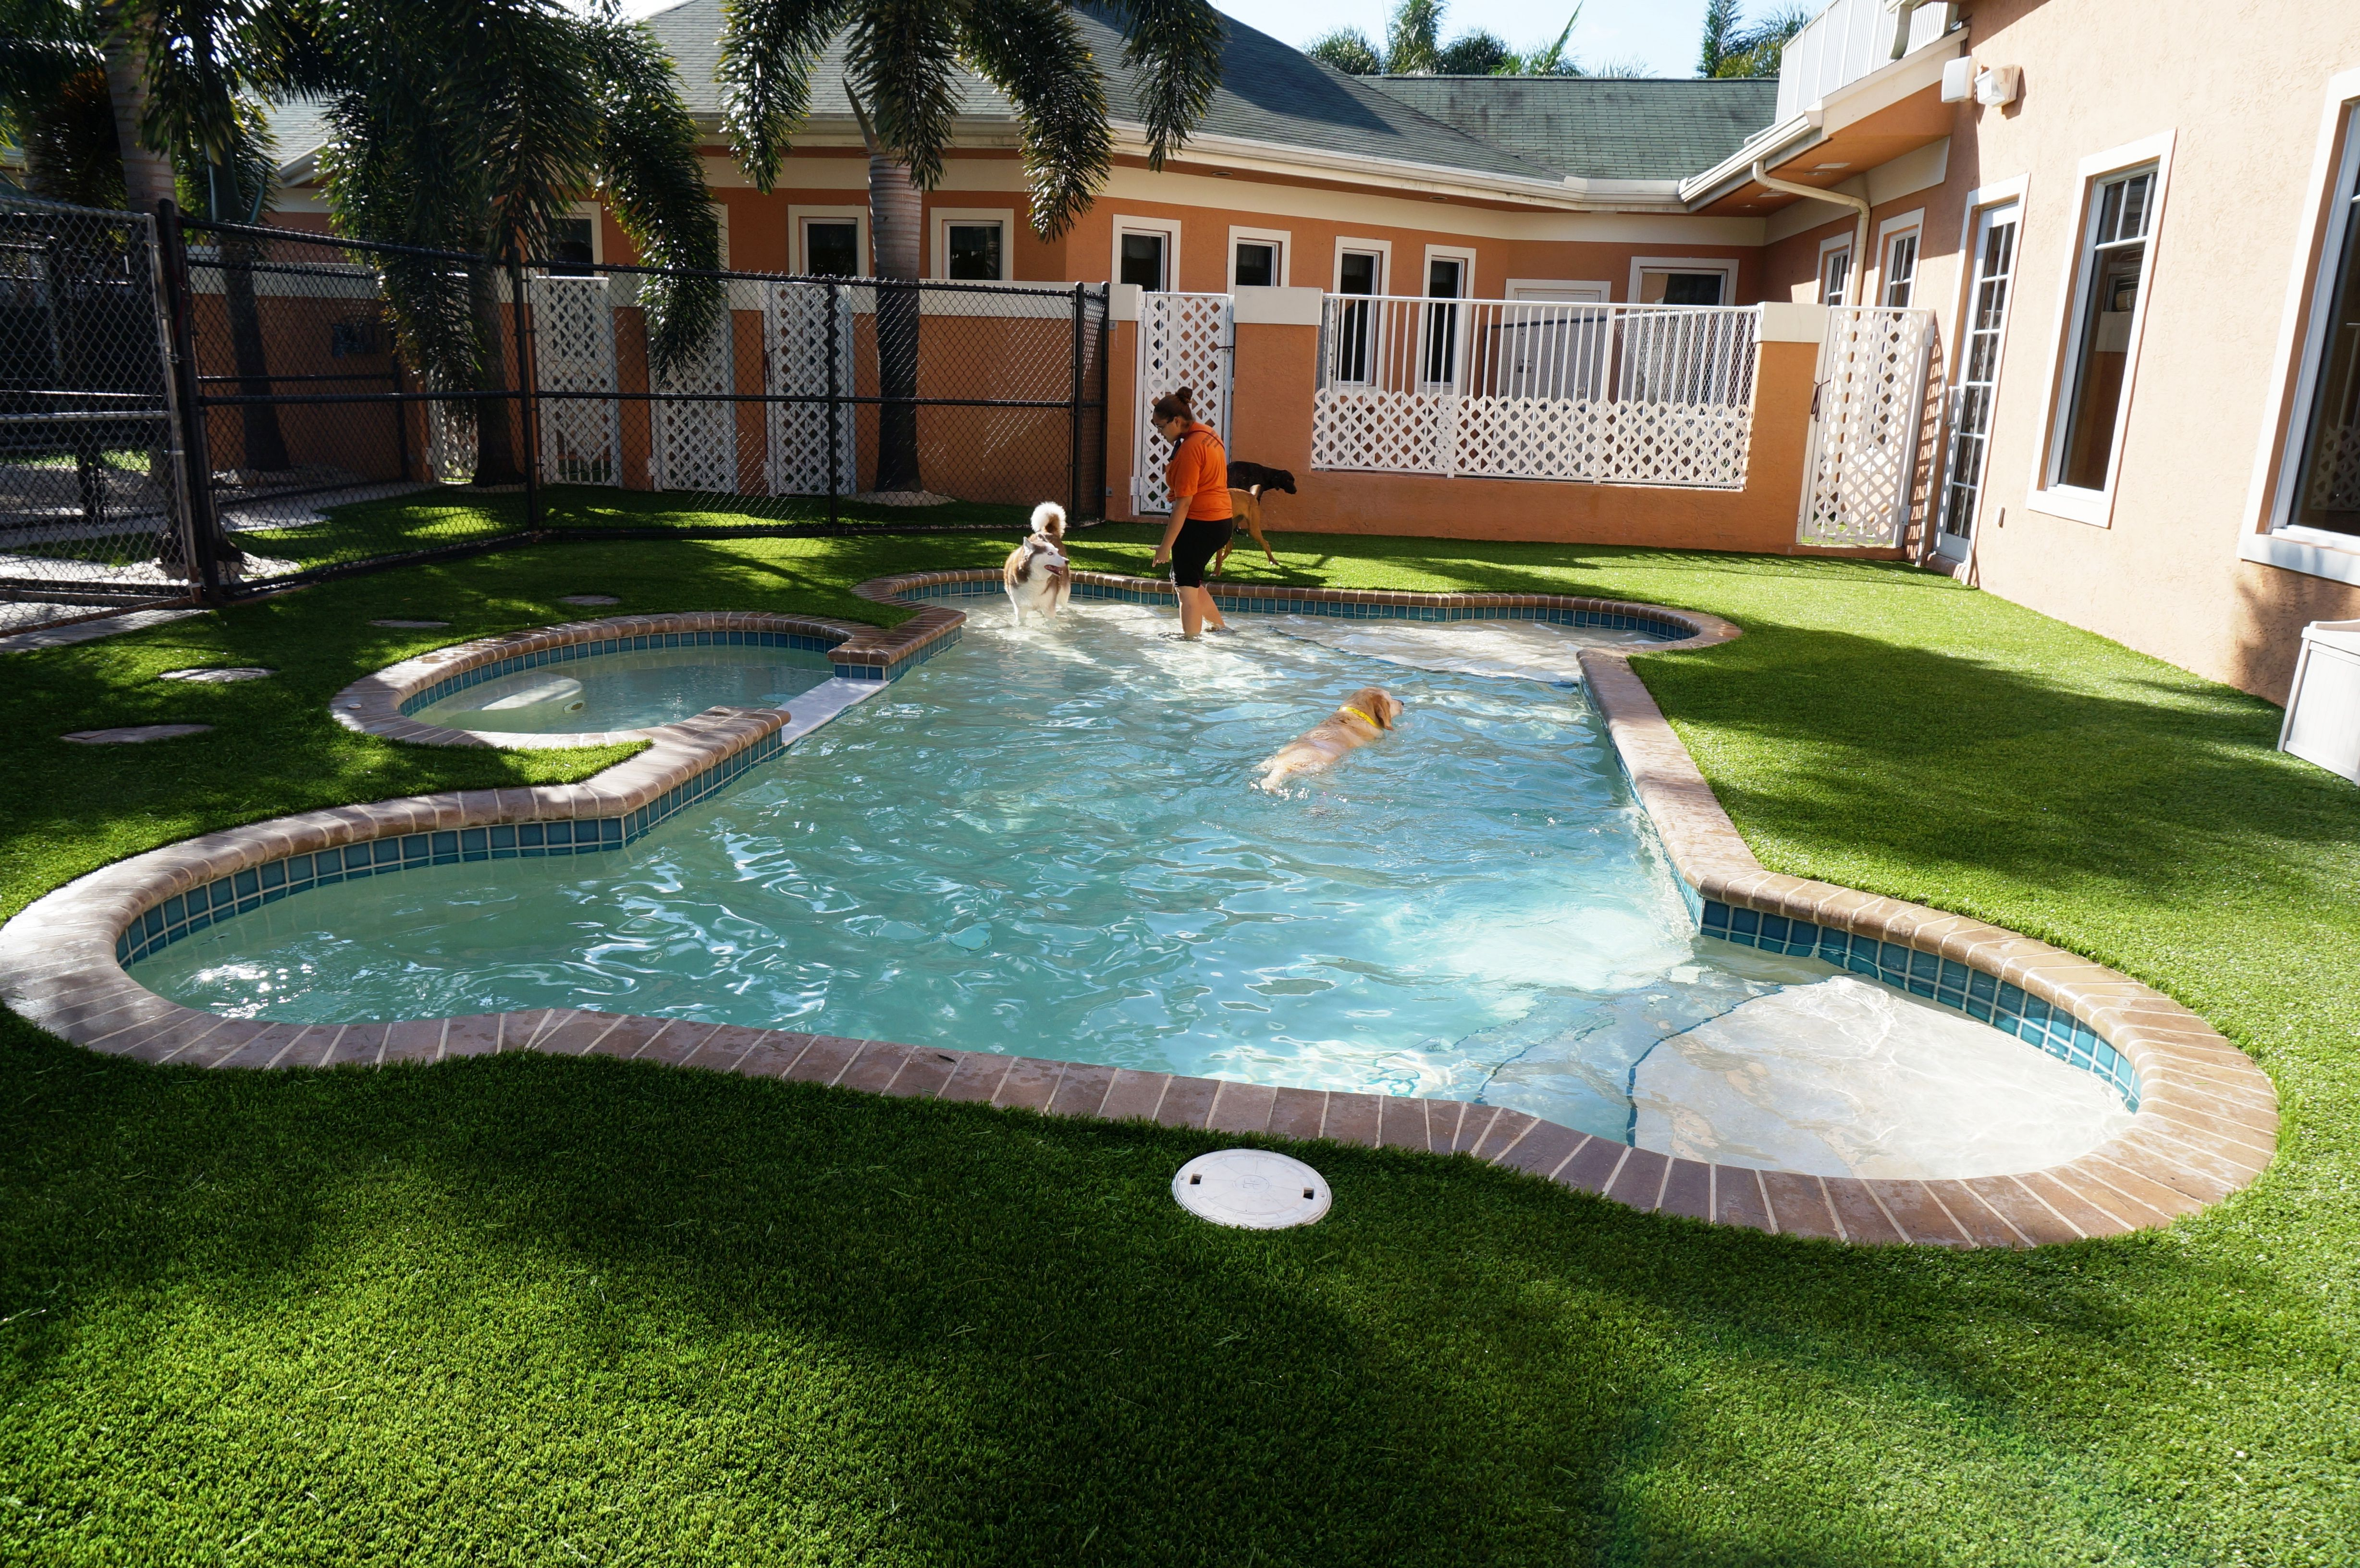 Check out our latest installation at Cesar Millan's Dog Psychology Center in Florida! This is the ultimate dog retreat. www.easyturf.com l outdoor living l pet grass l dog grass l dog friendly backyard l dog whisperer